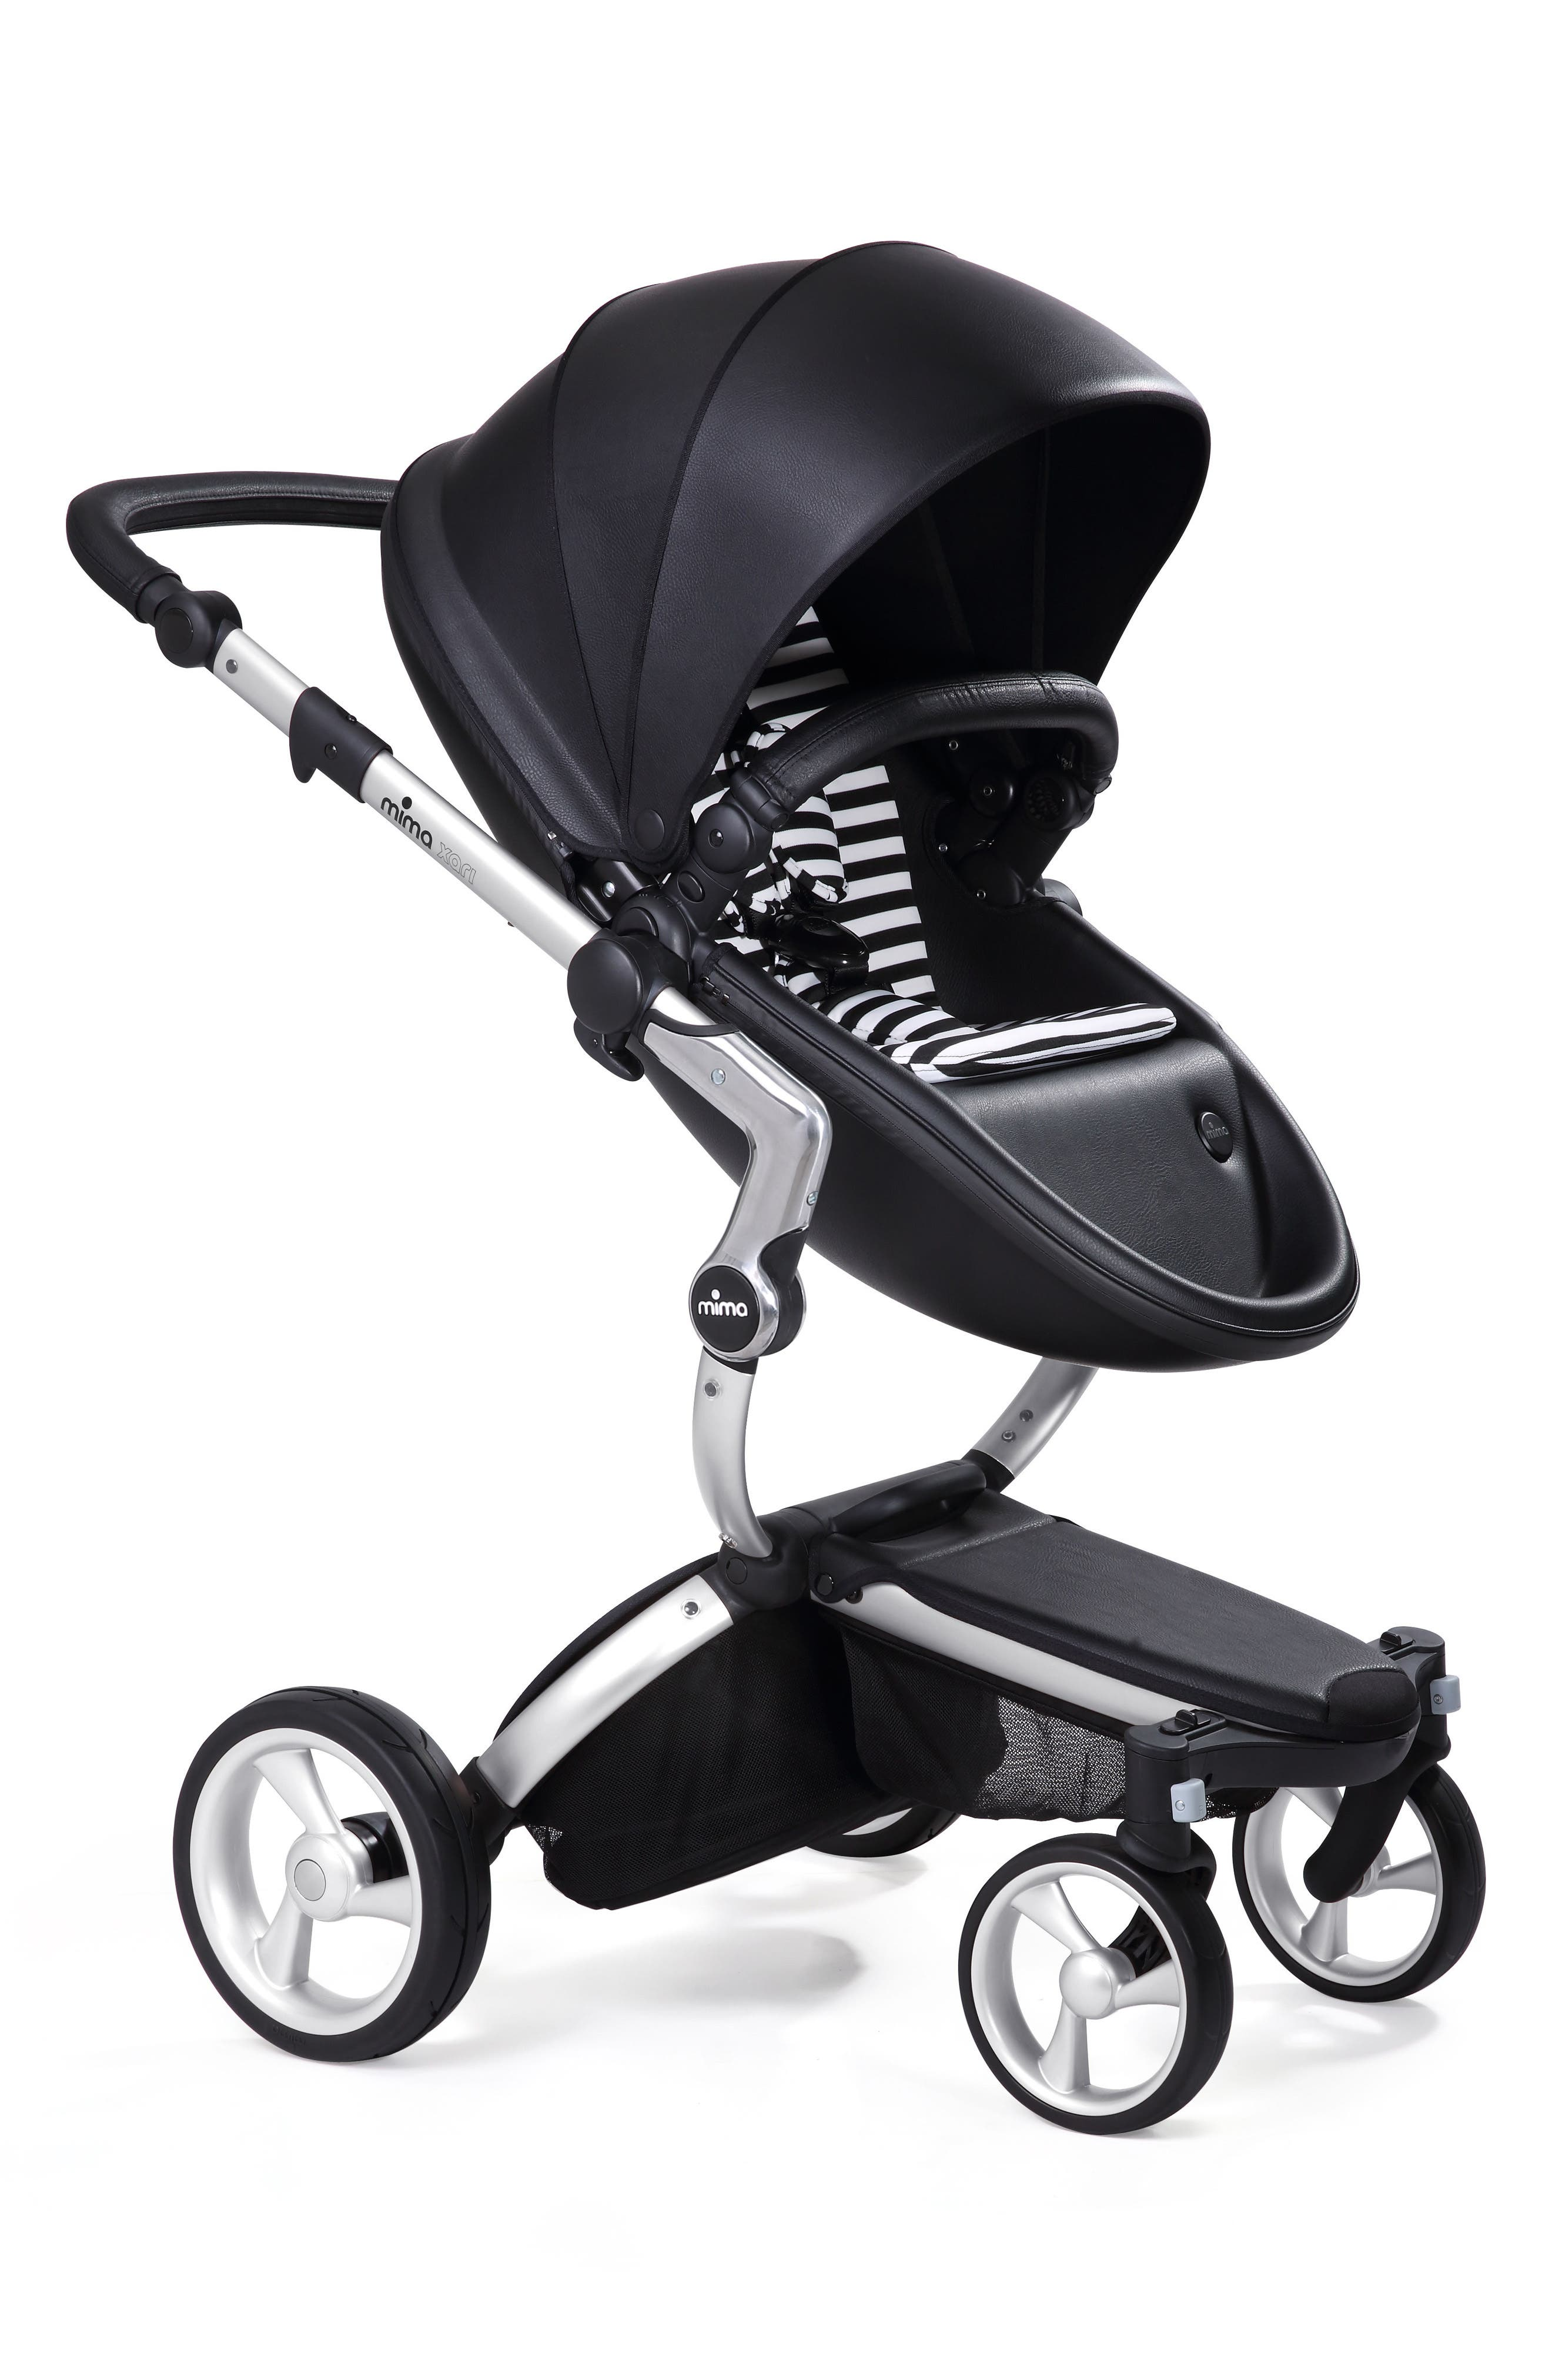 Xari Aluminum Chassis Stroller with Reversible Reclining Seat & Carrycot,                             Main thumbnail 1, color,                             BLACK / BLACK AND WHITE